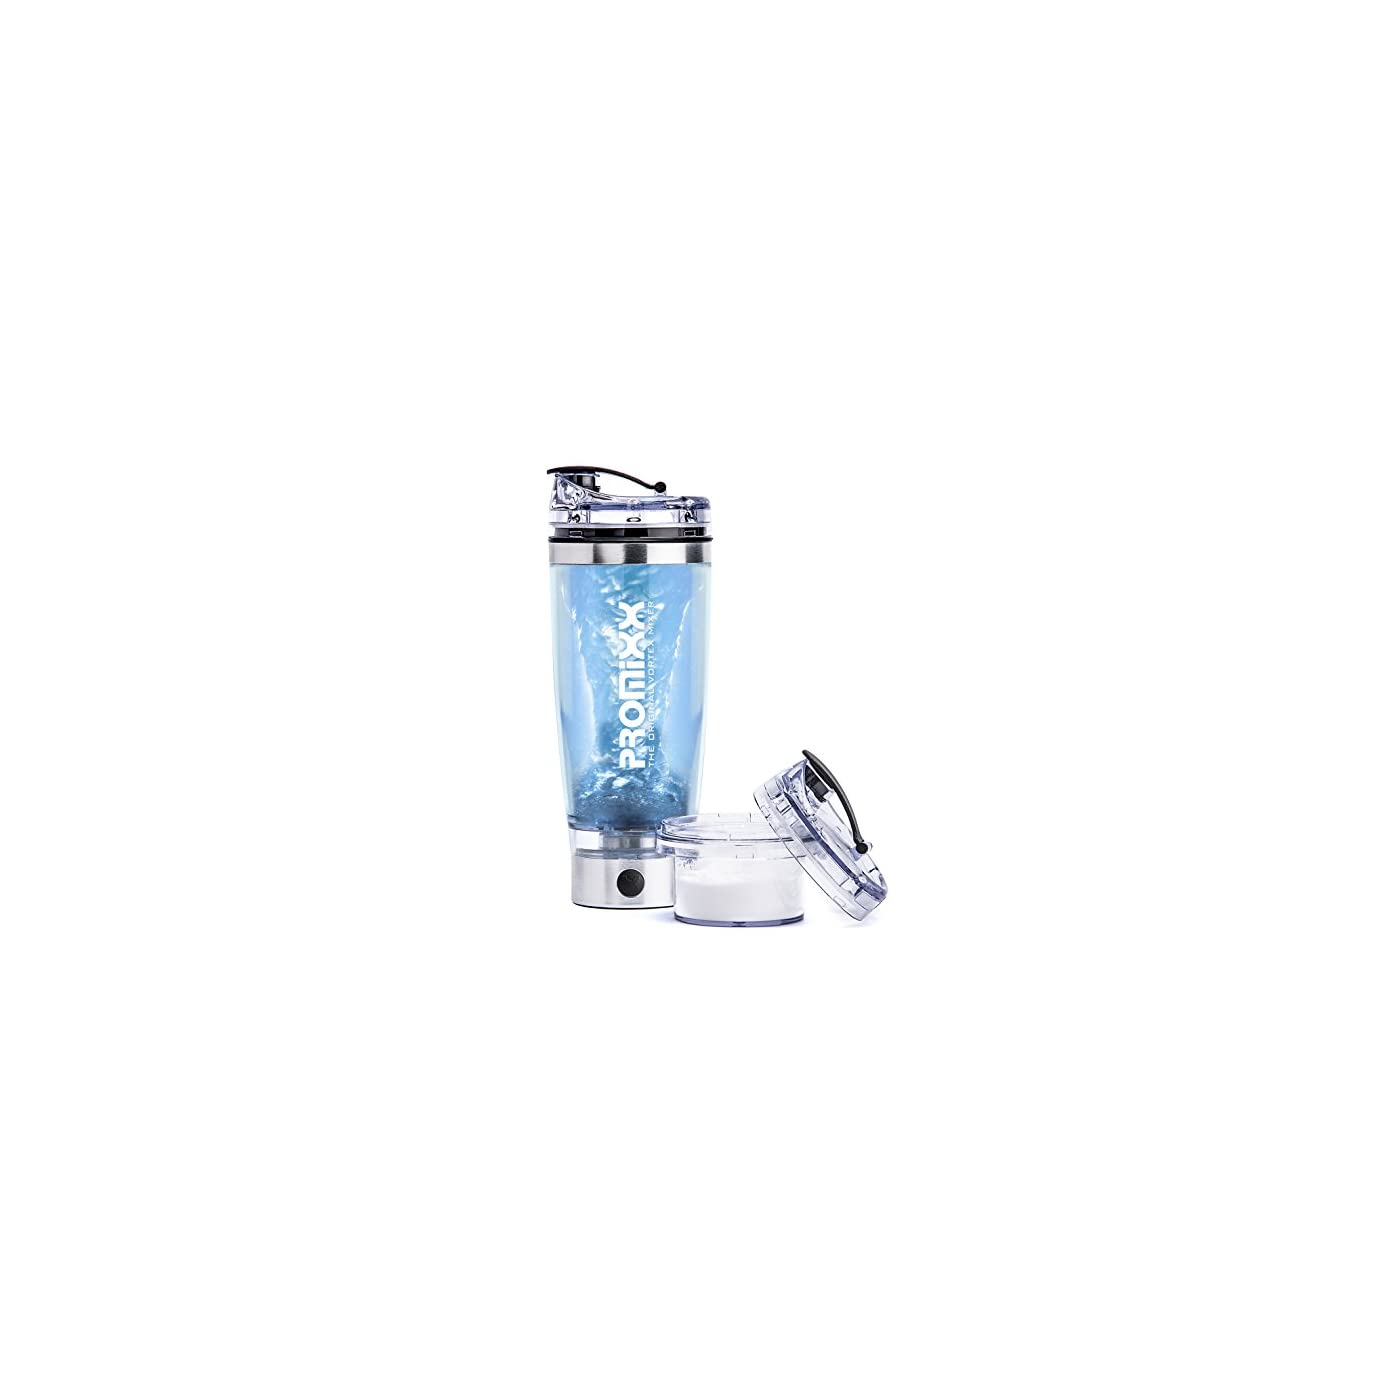 PROMiXX-20-2018-Model-Stylish-Stainless-steel-Shaker-Bottle